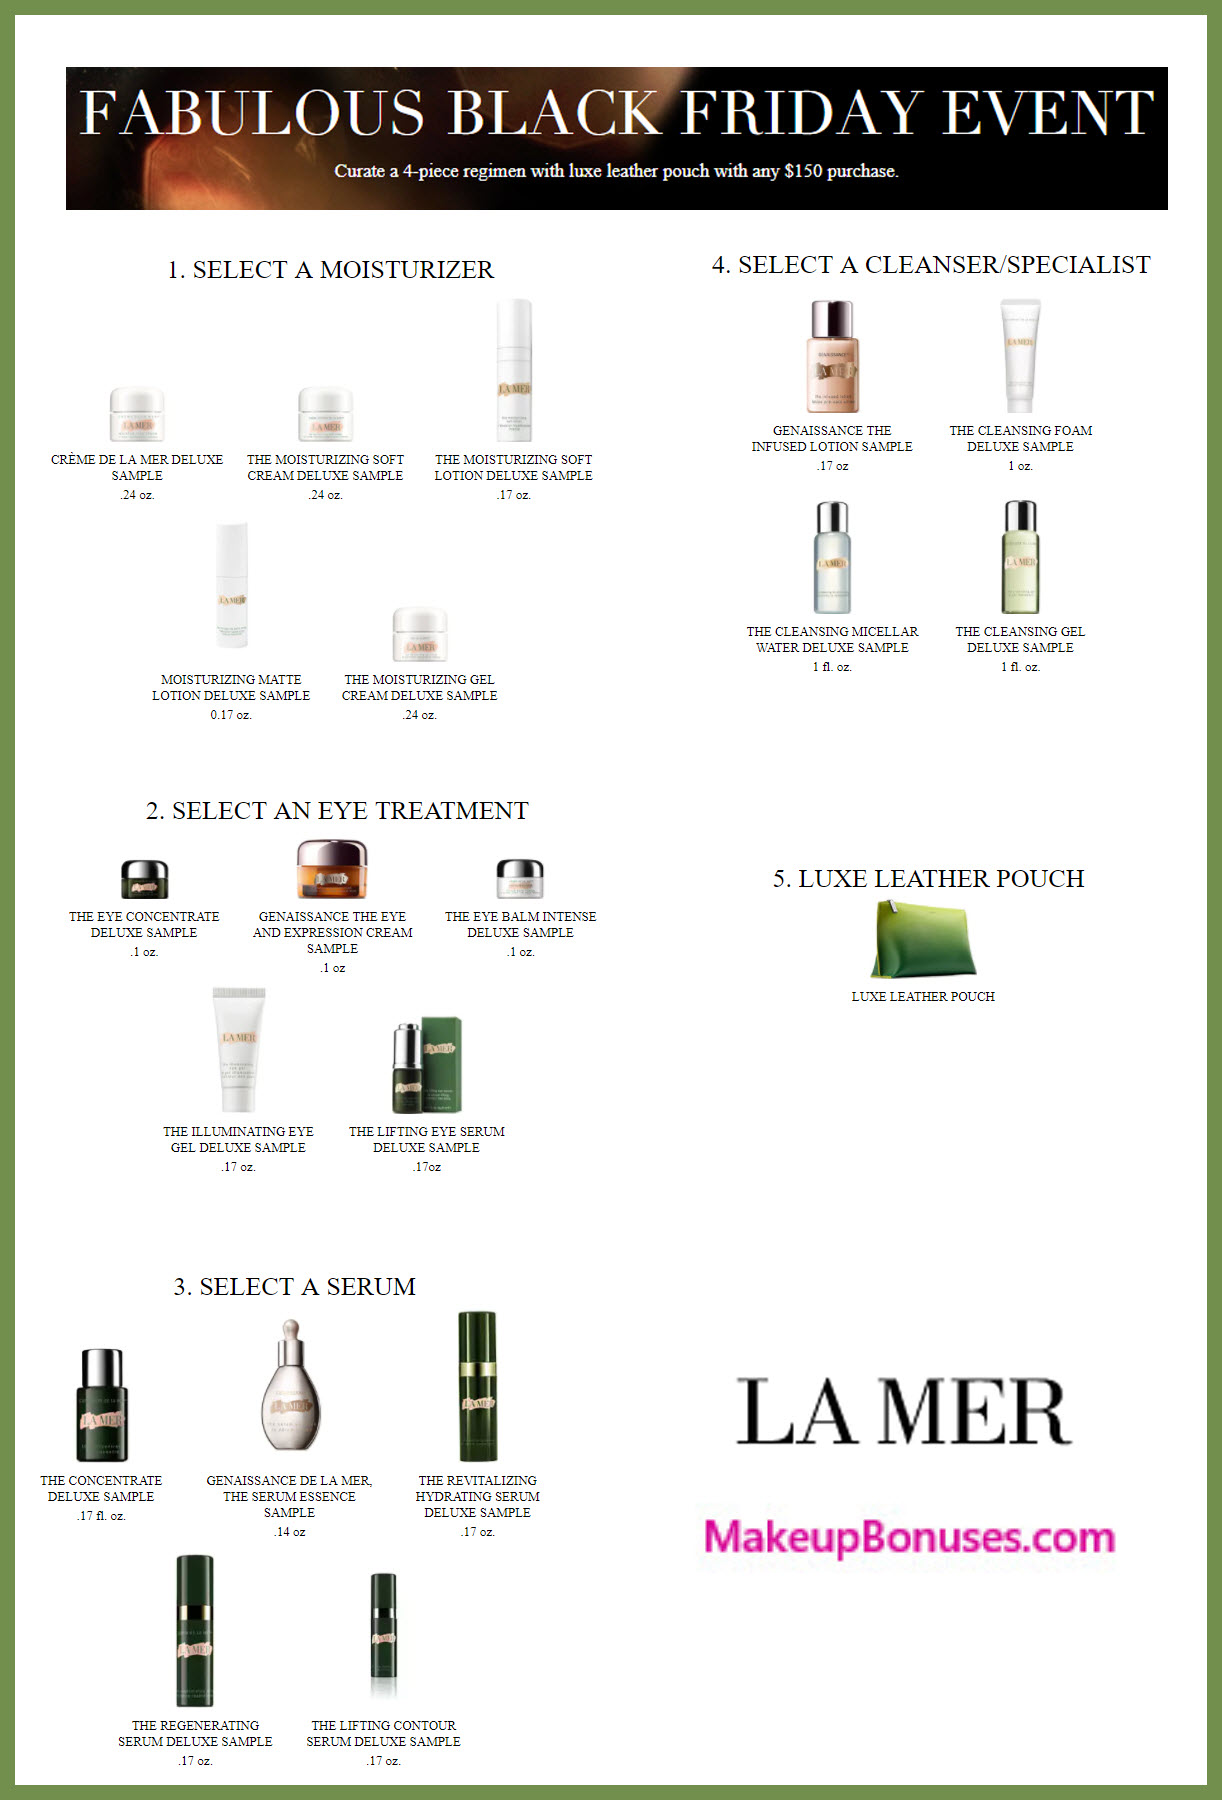 Receive your choice of 5-pc gift with your $150 La Mer purchase